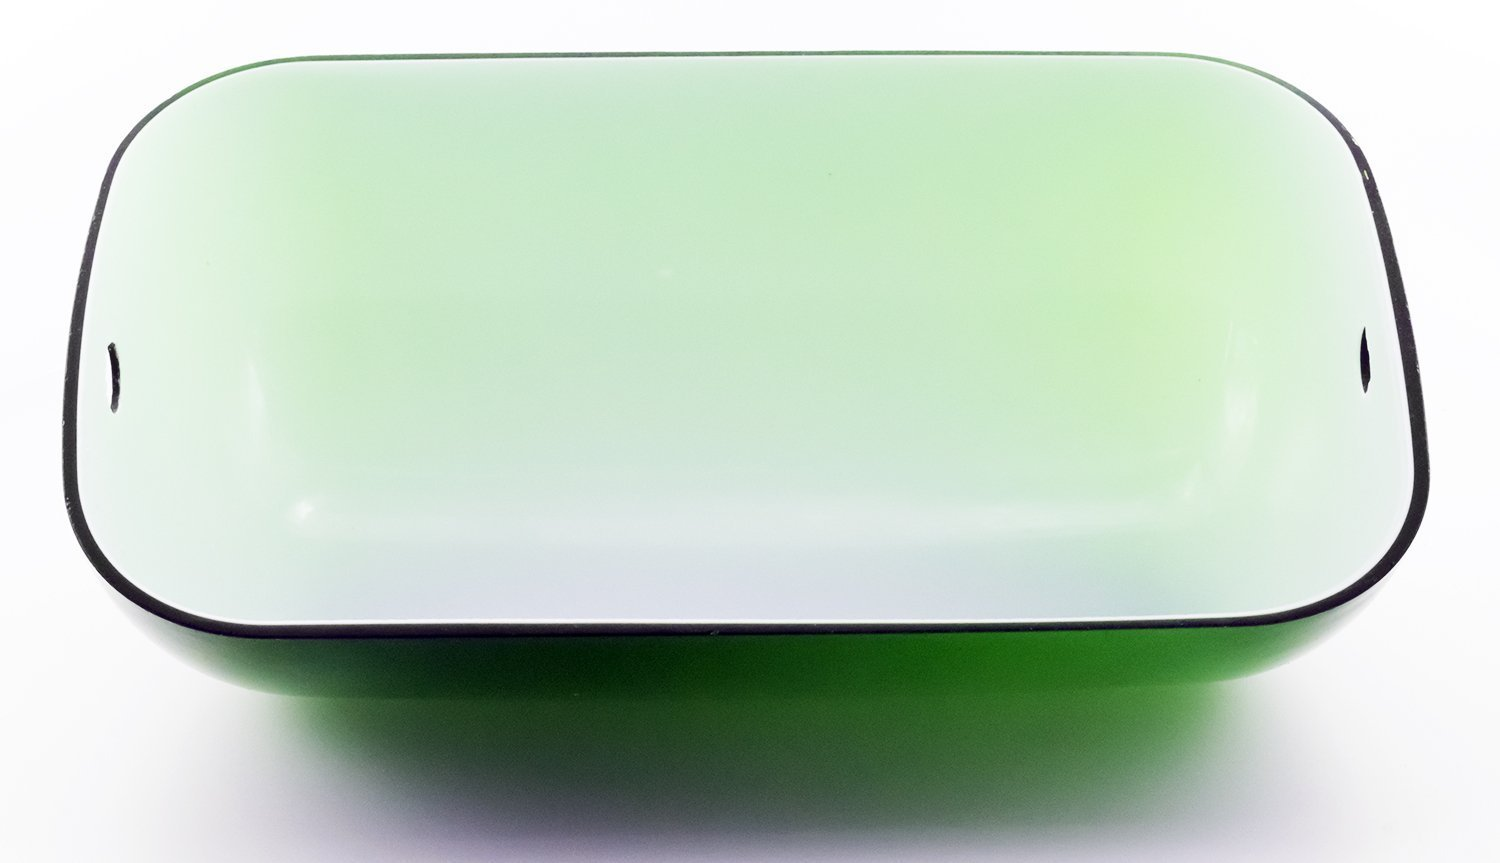 Upgradelights Green Glass Bankers Lamp Shade Replacement